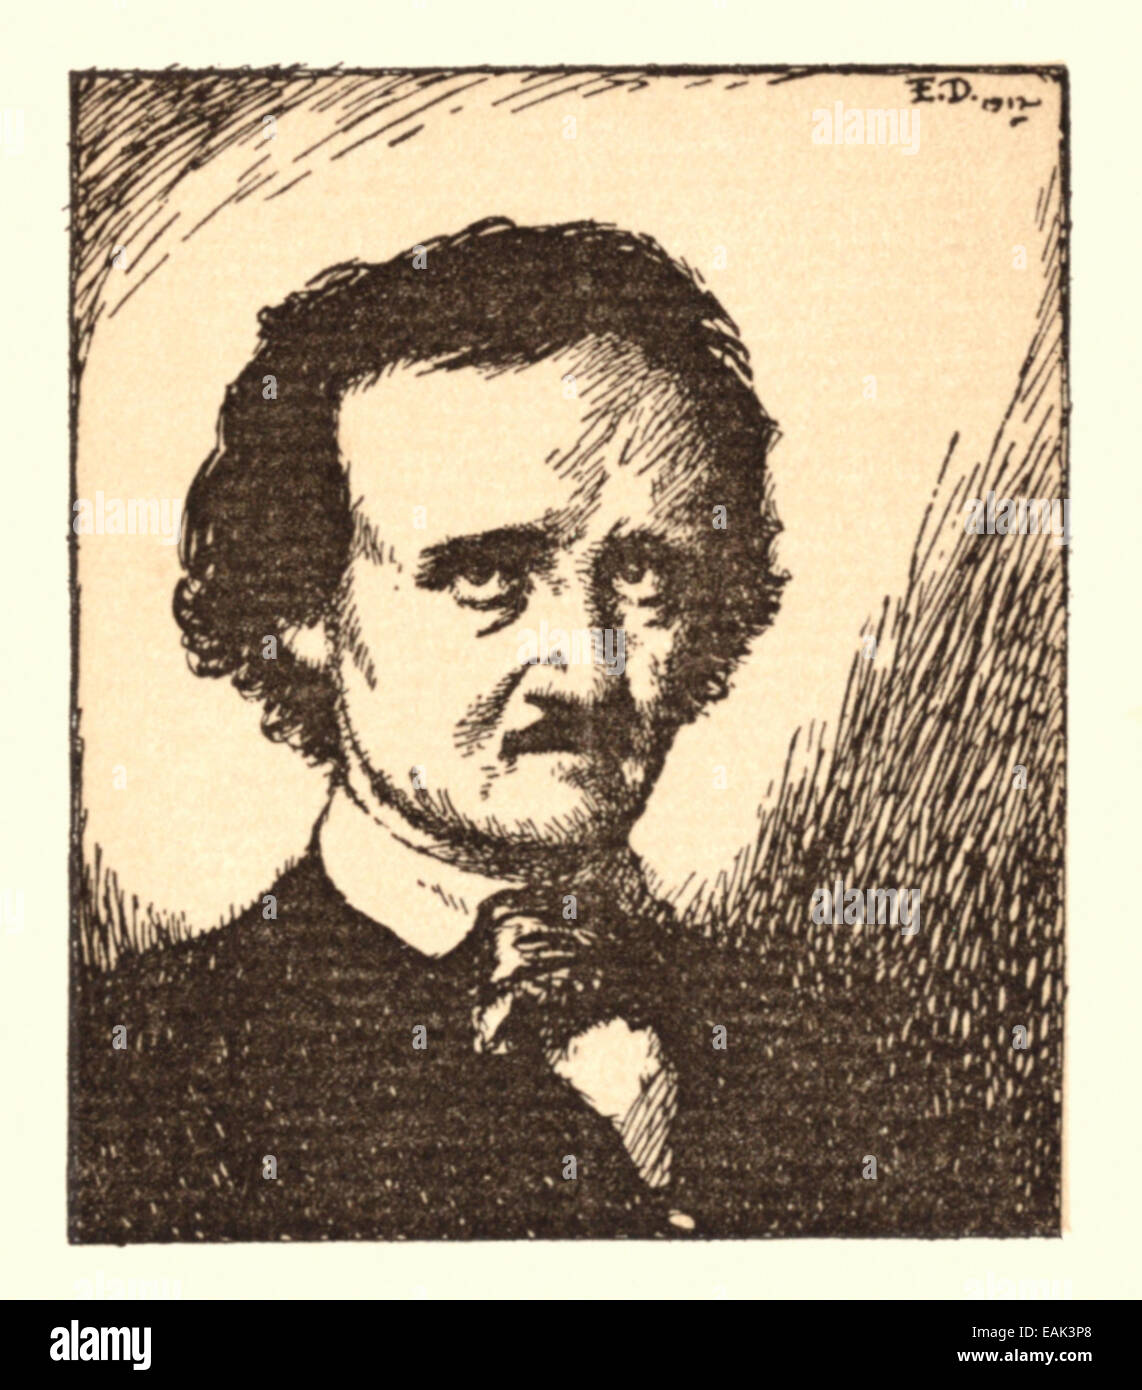 Portrait of Edgar Allan Poe (1809-1849), illustration by Edmund Dulac (1882-1953) who illustrated a collection of - Stock Image